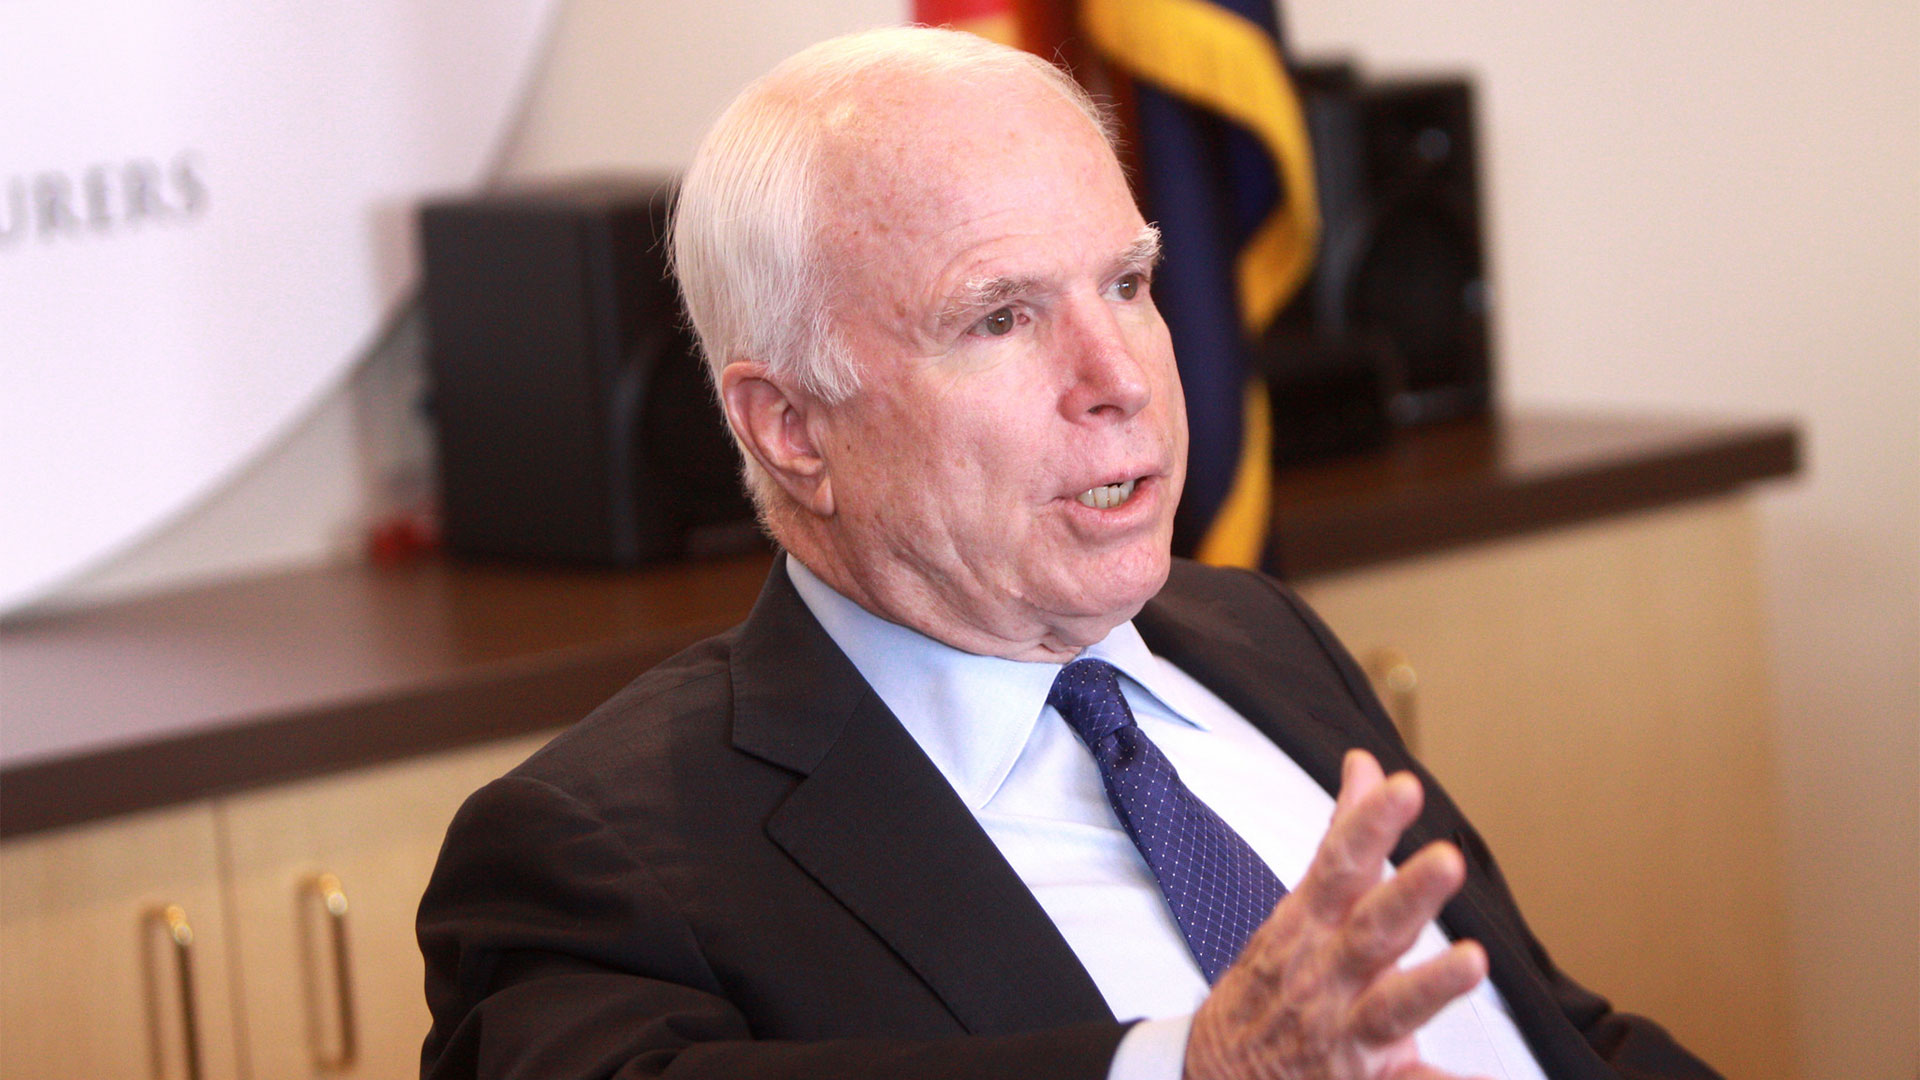 Sen. John McCain speaking at a business roundtable hosted by the Arizona Chamber of Commerce & Industry in Phoenix, Arizona, in 2013.